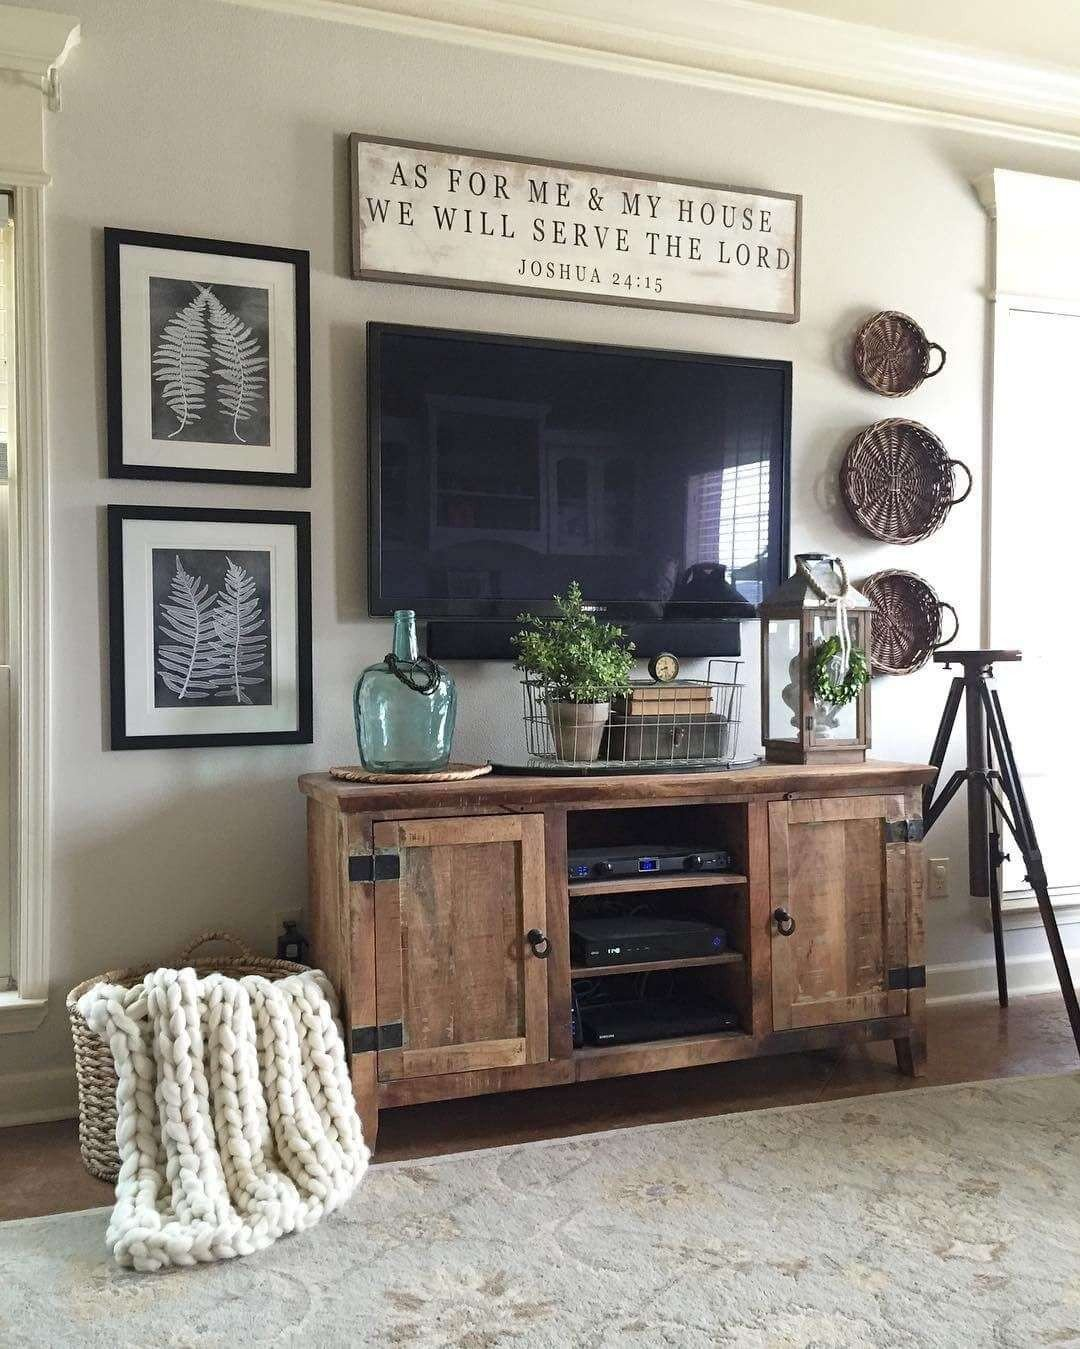 Wall Decorating Ideas for Bedroom Inspirational Wall Hanging Ideas for Bedrooms Inspirational Rustic